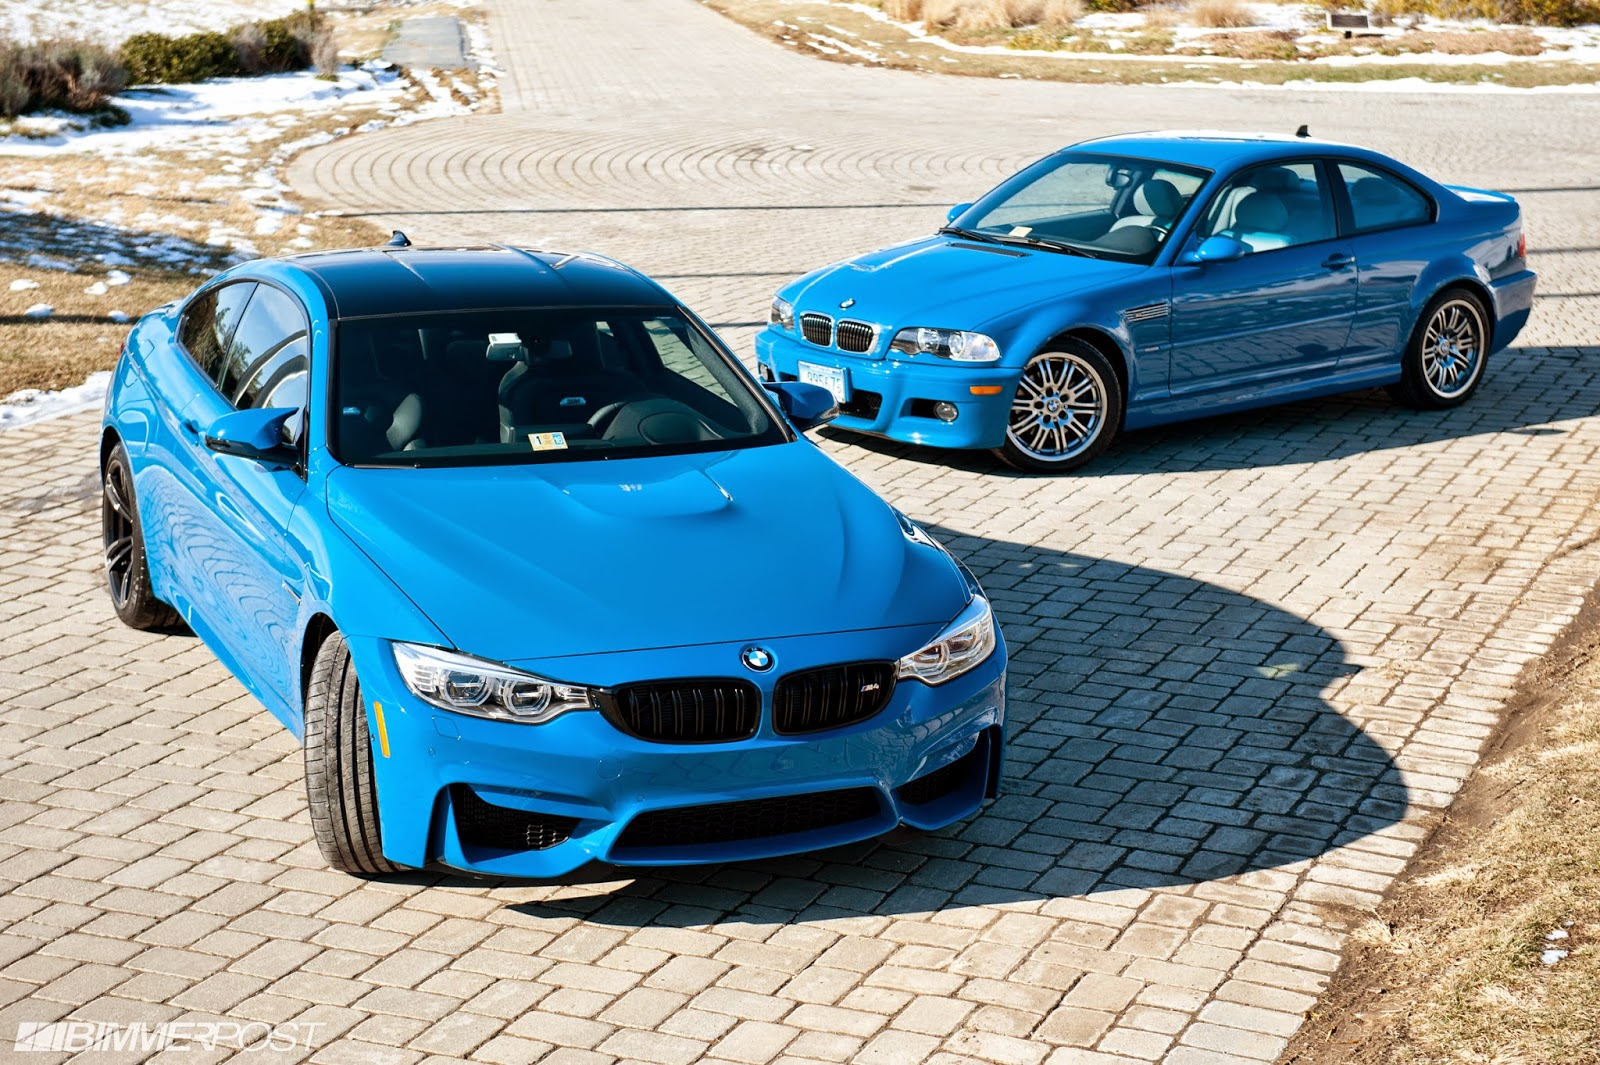 Owner Gets Laguna Seca Blue Bmw M4 To Match His E46 M3